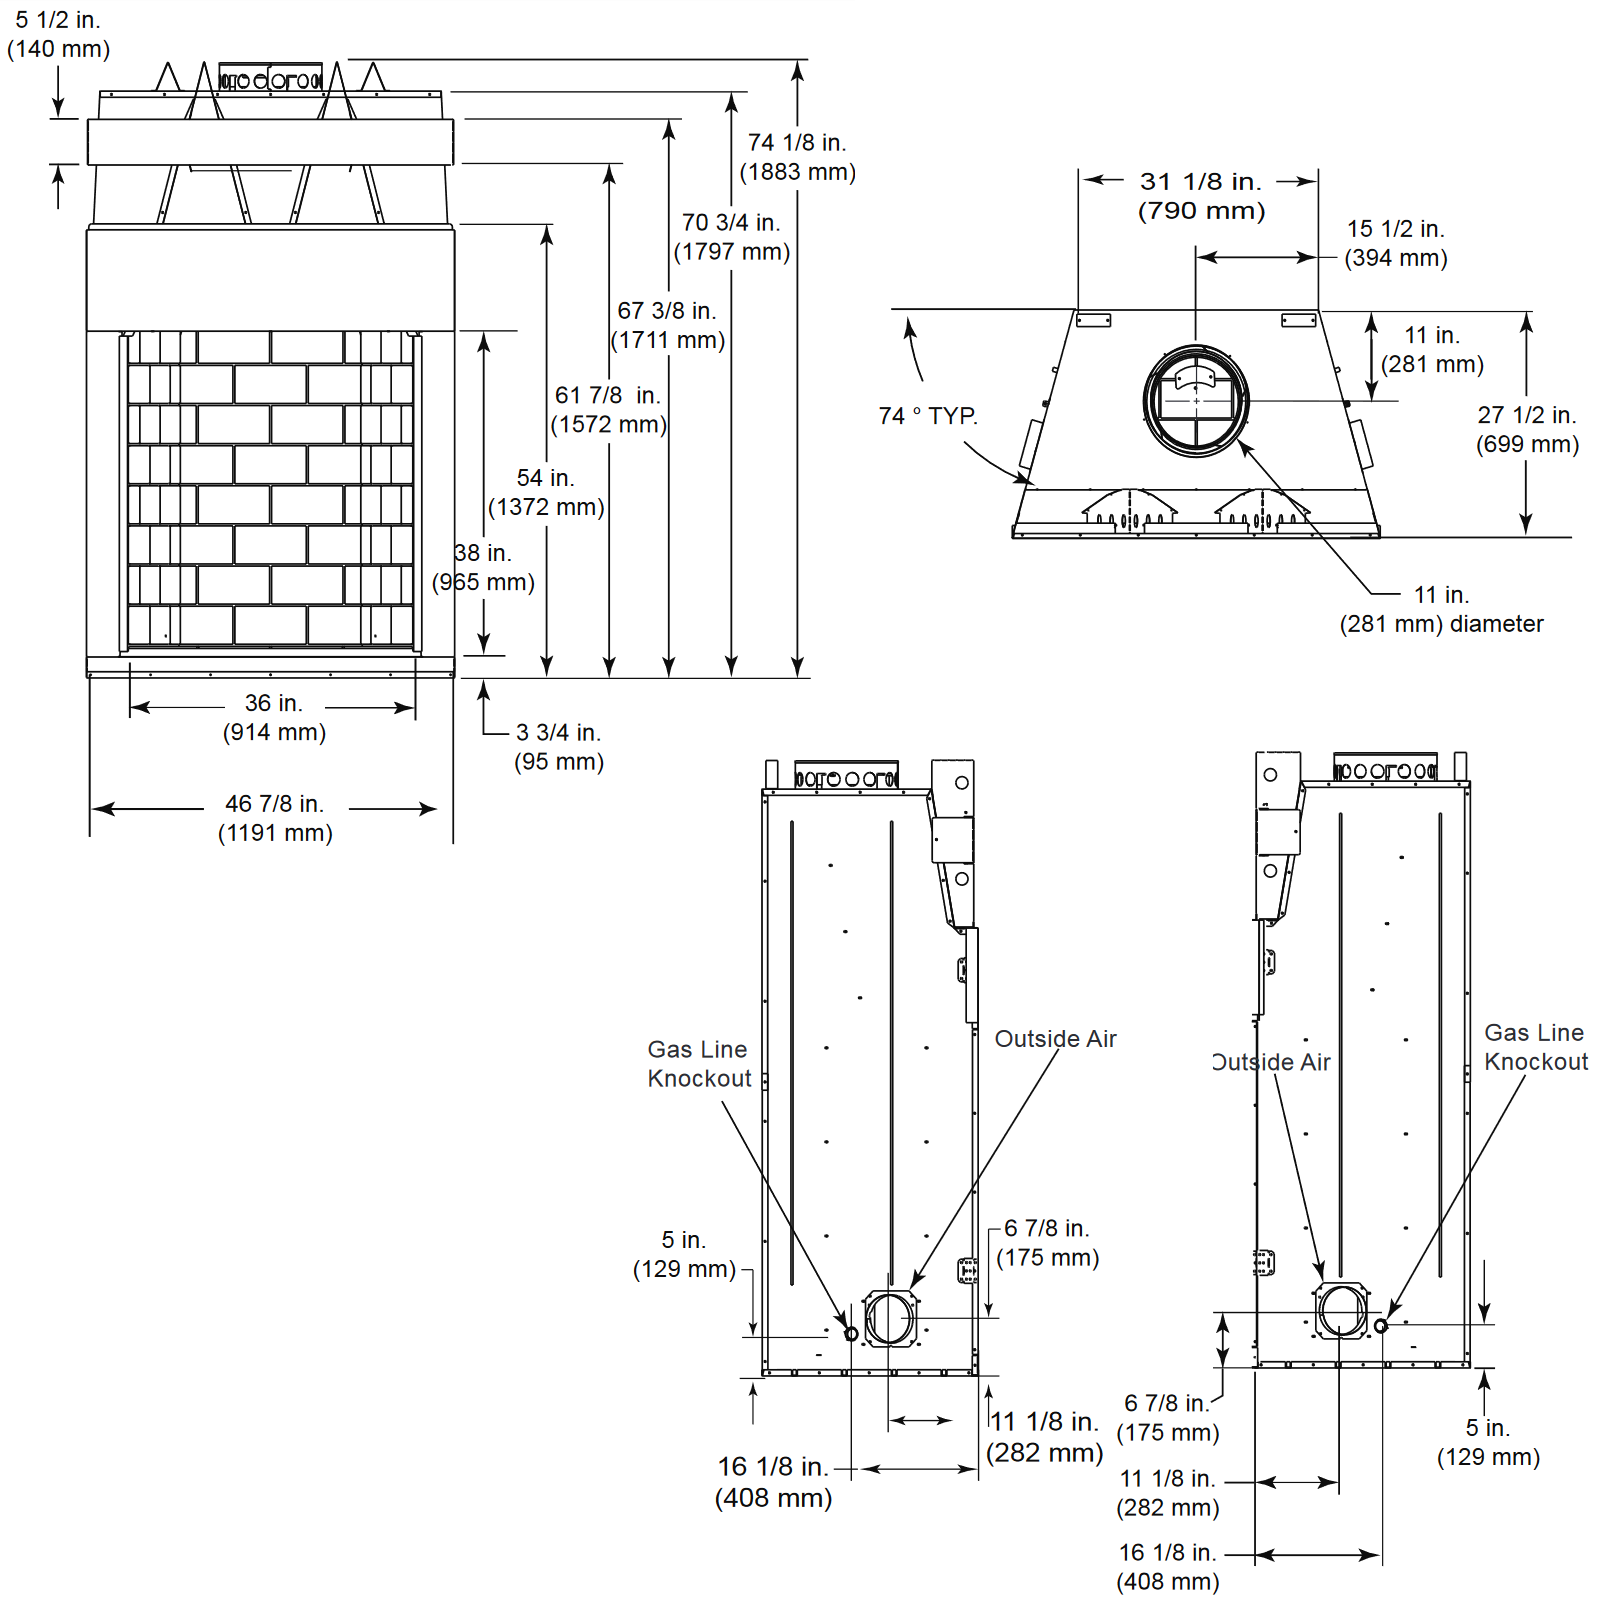 ASH36 Technical Drawing 1